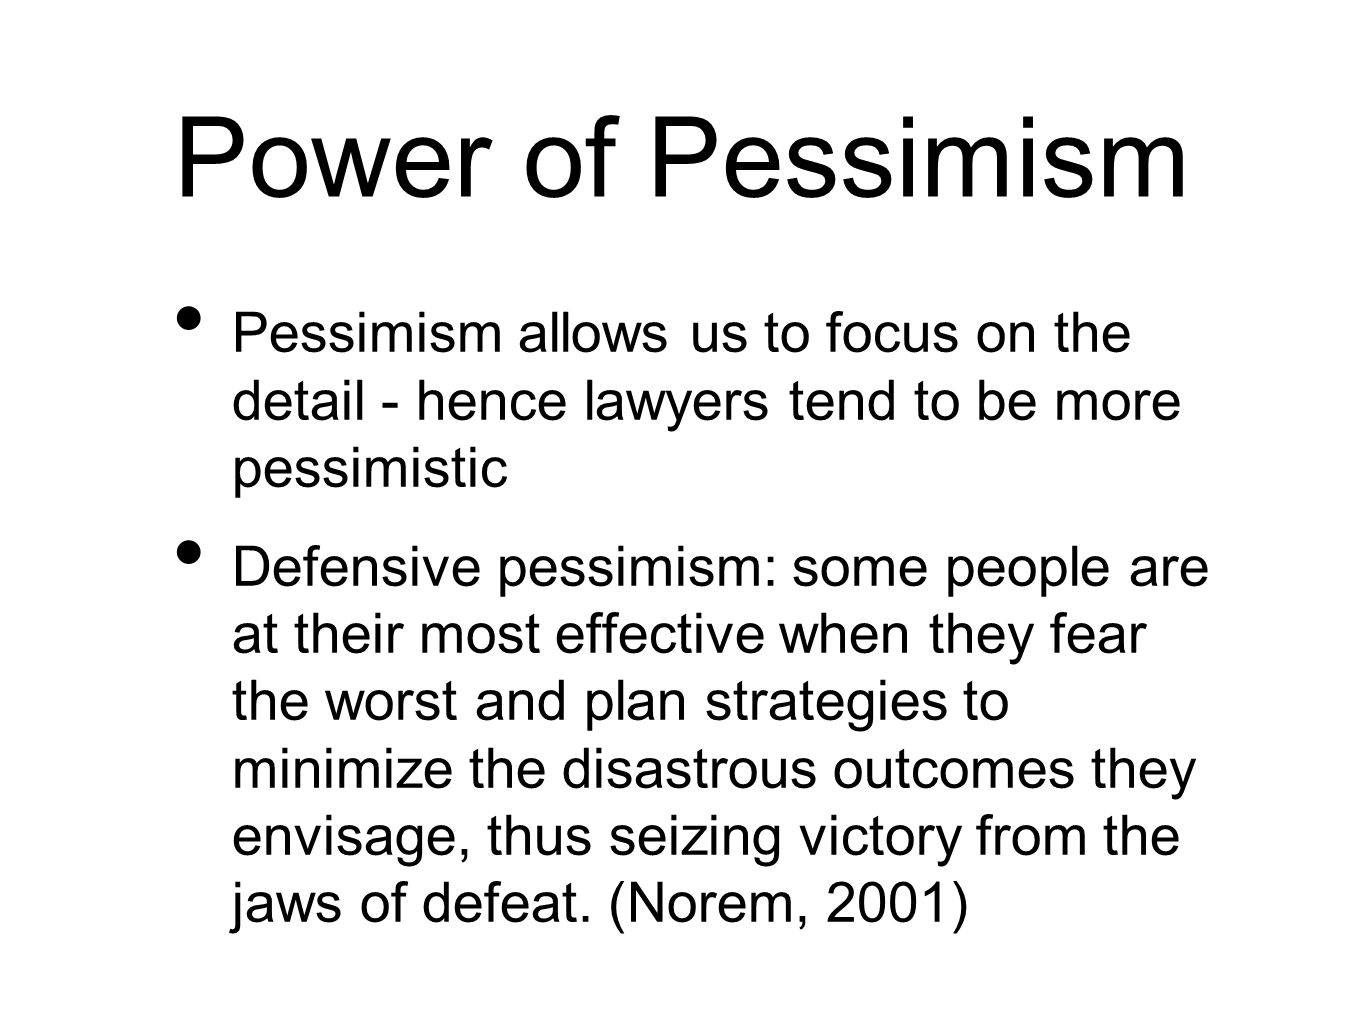 Power of Pessimism Pessimism allows us to focus on the detail - hence lawyers tend to be more pessimistic Defensive pessimism: some people are at their most effective when they fear the worst and plan strategies to minimize the disastrous outcomes they envisage, thus seizing victory from the jaws of defeat.